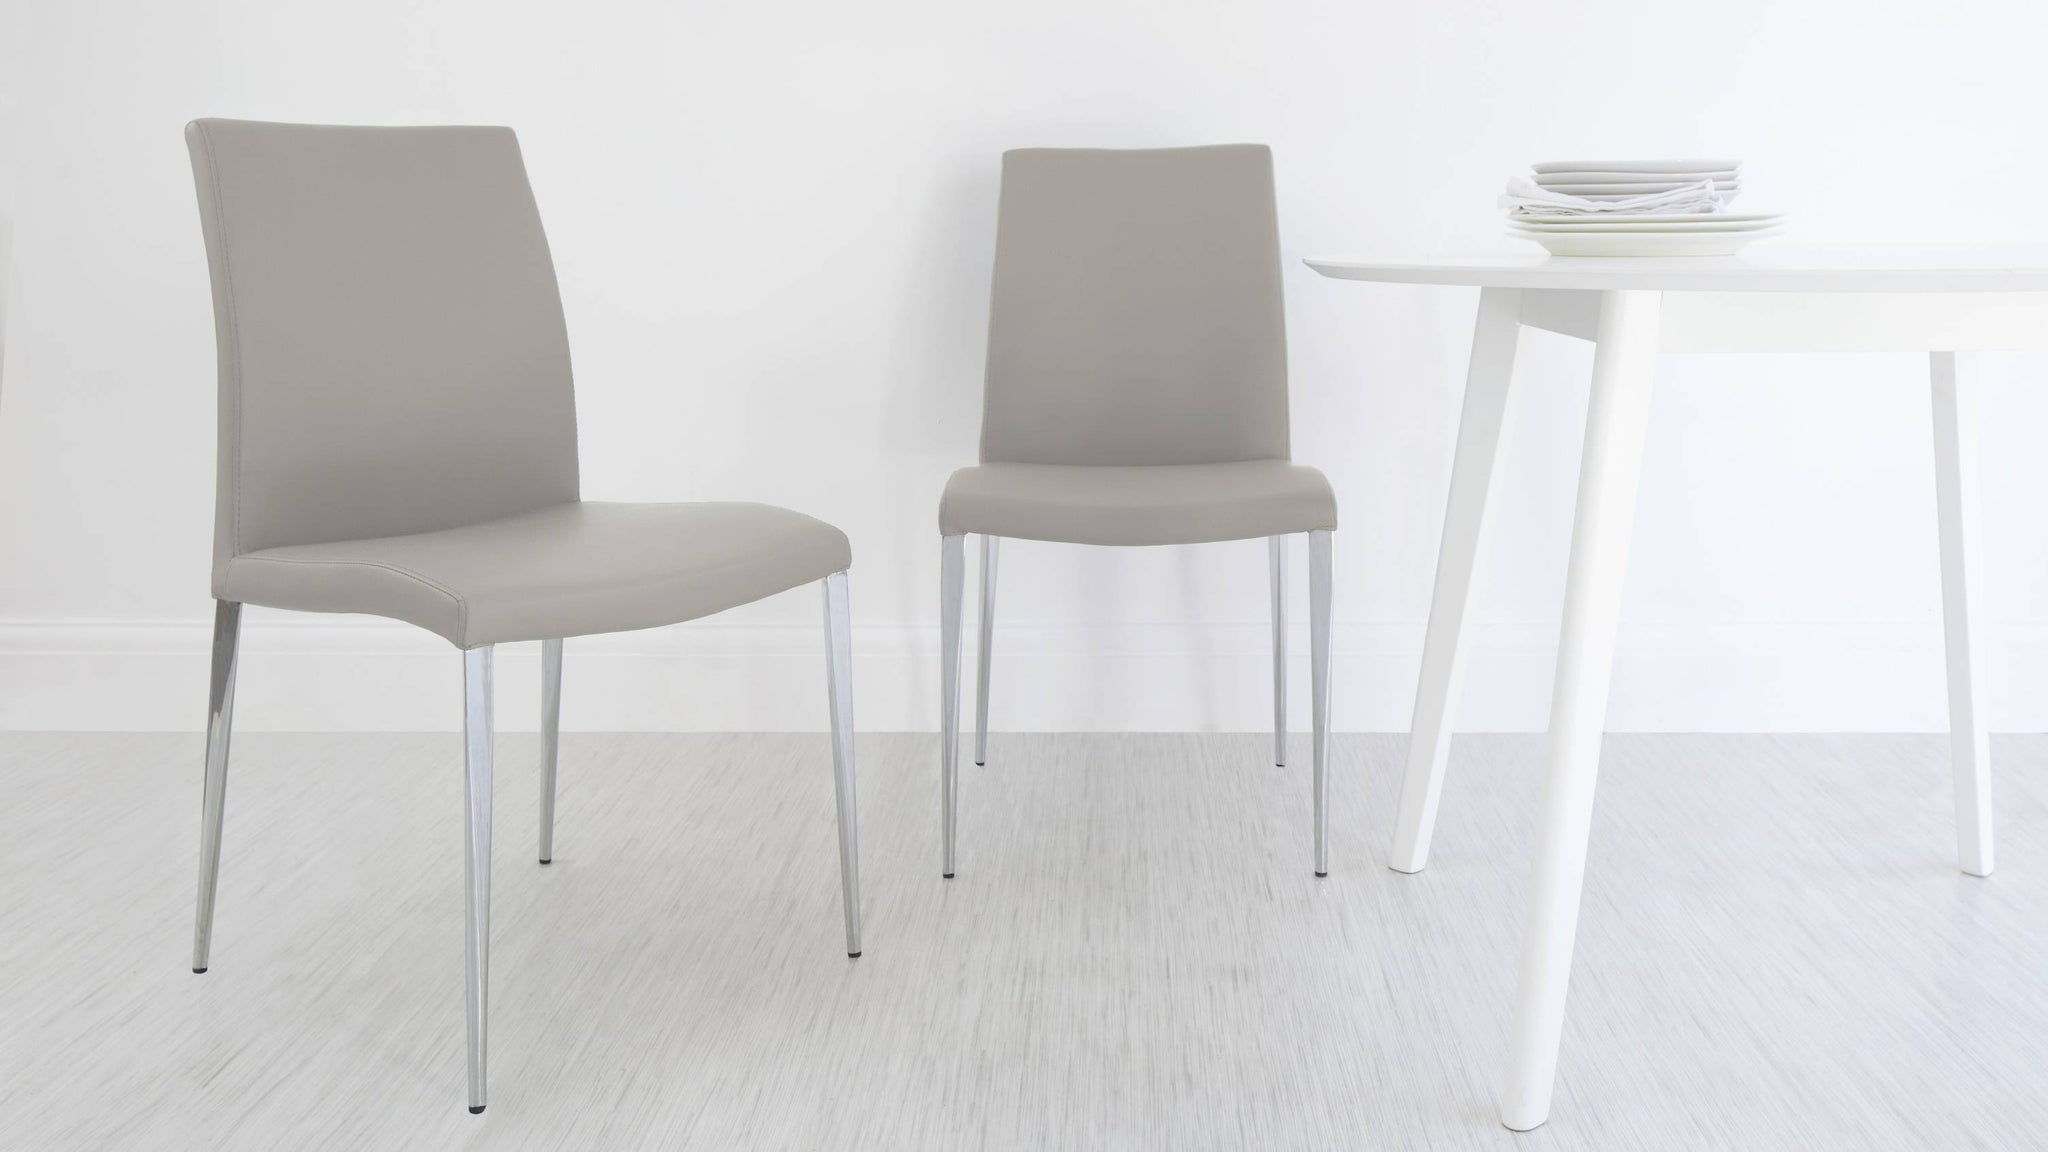 Light Grey Chairs with Chrome Legs